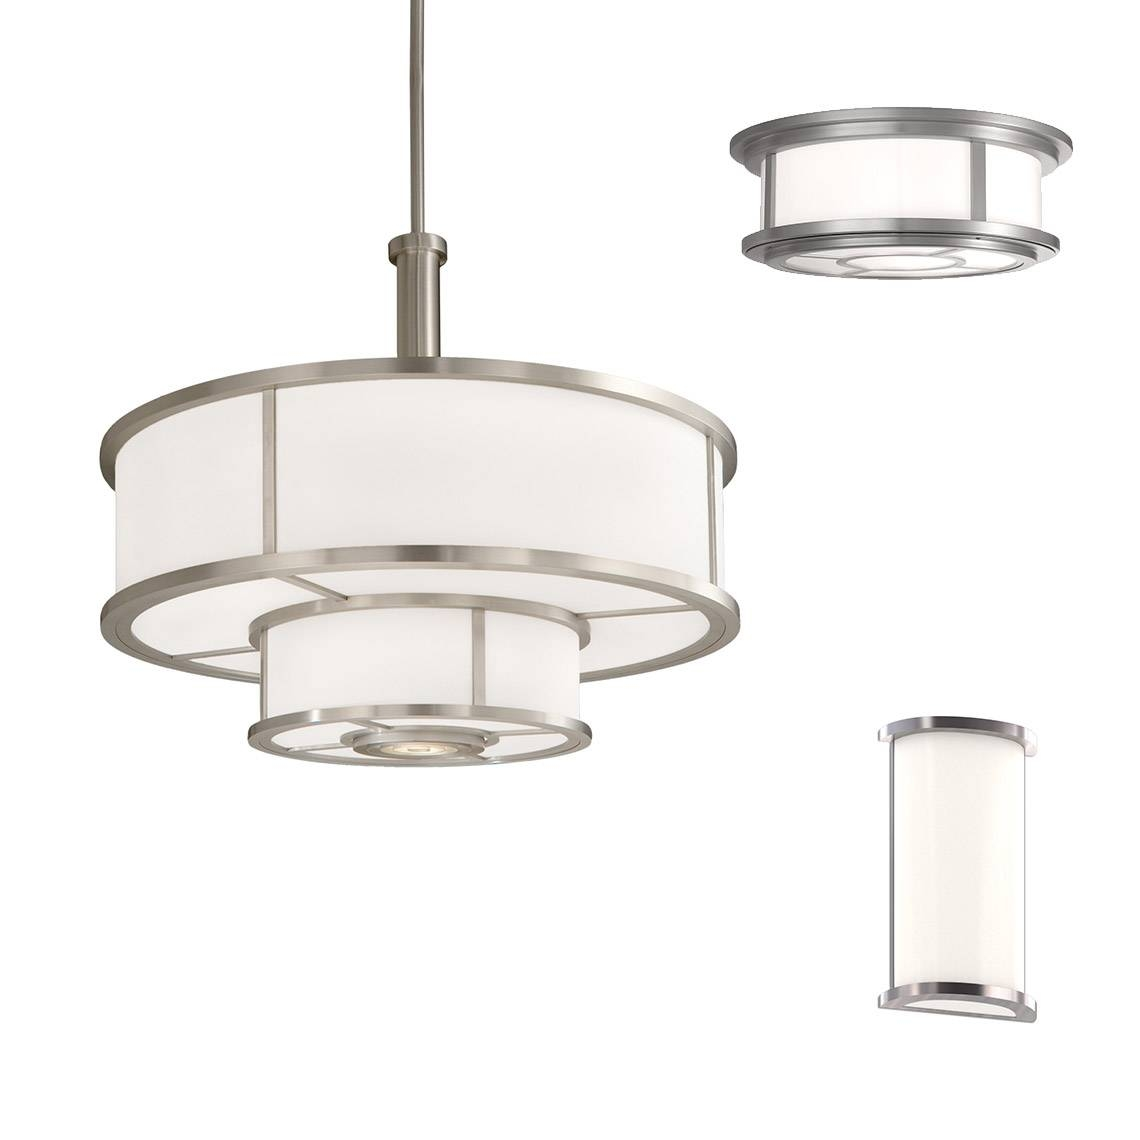 Catalog Lighting | Crenshaw Lighting throughout Church Pendant Lights Fixtures (Image 3 of 15)